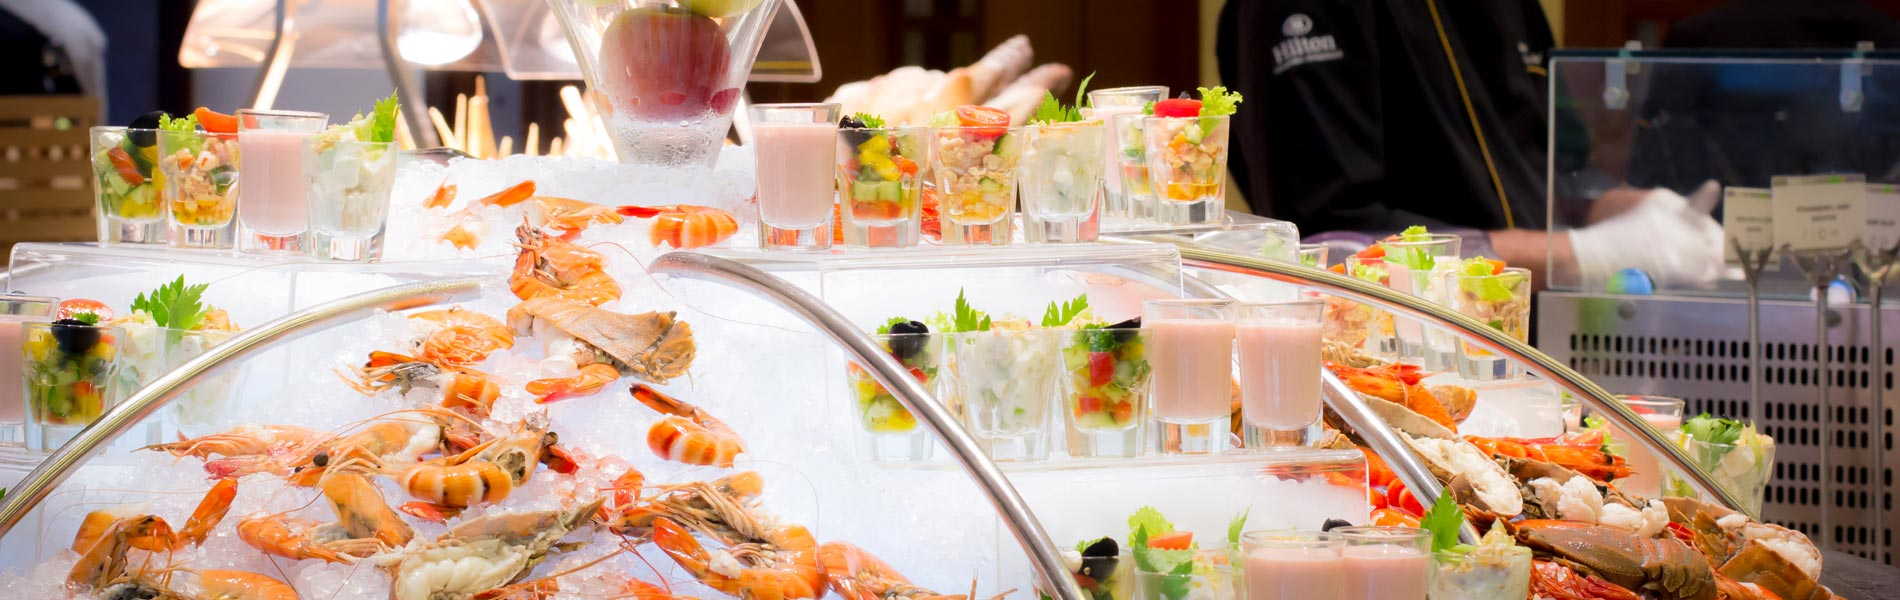 The Sunday Brunch has an extensive range of delicacies for every member of the family